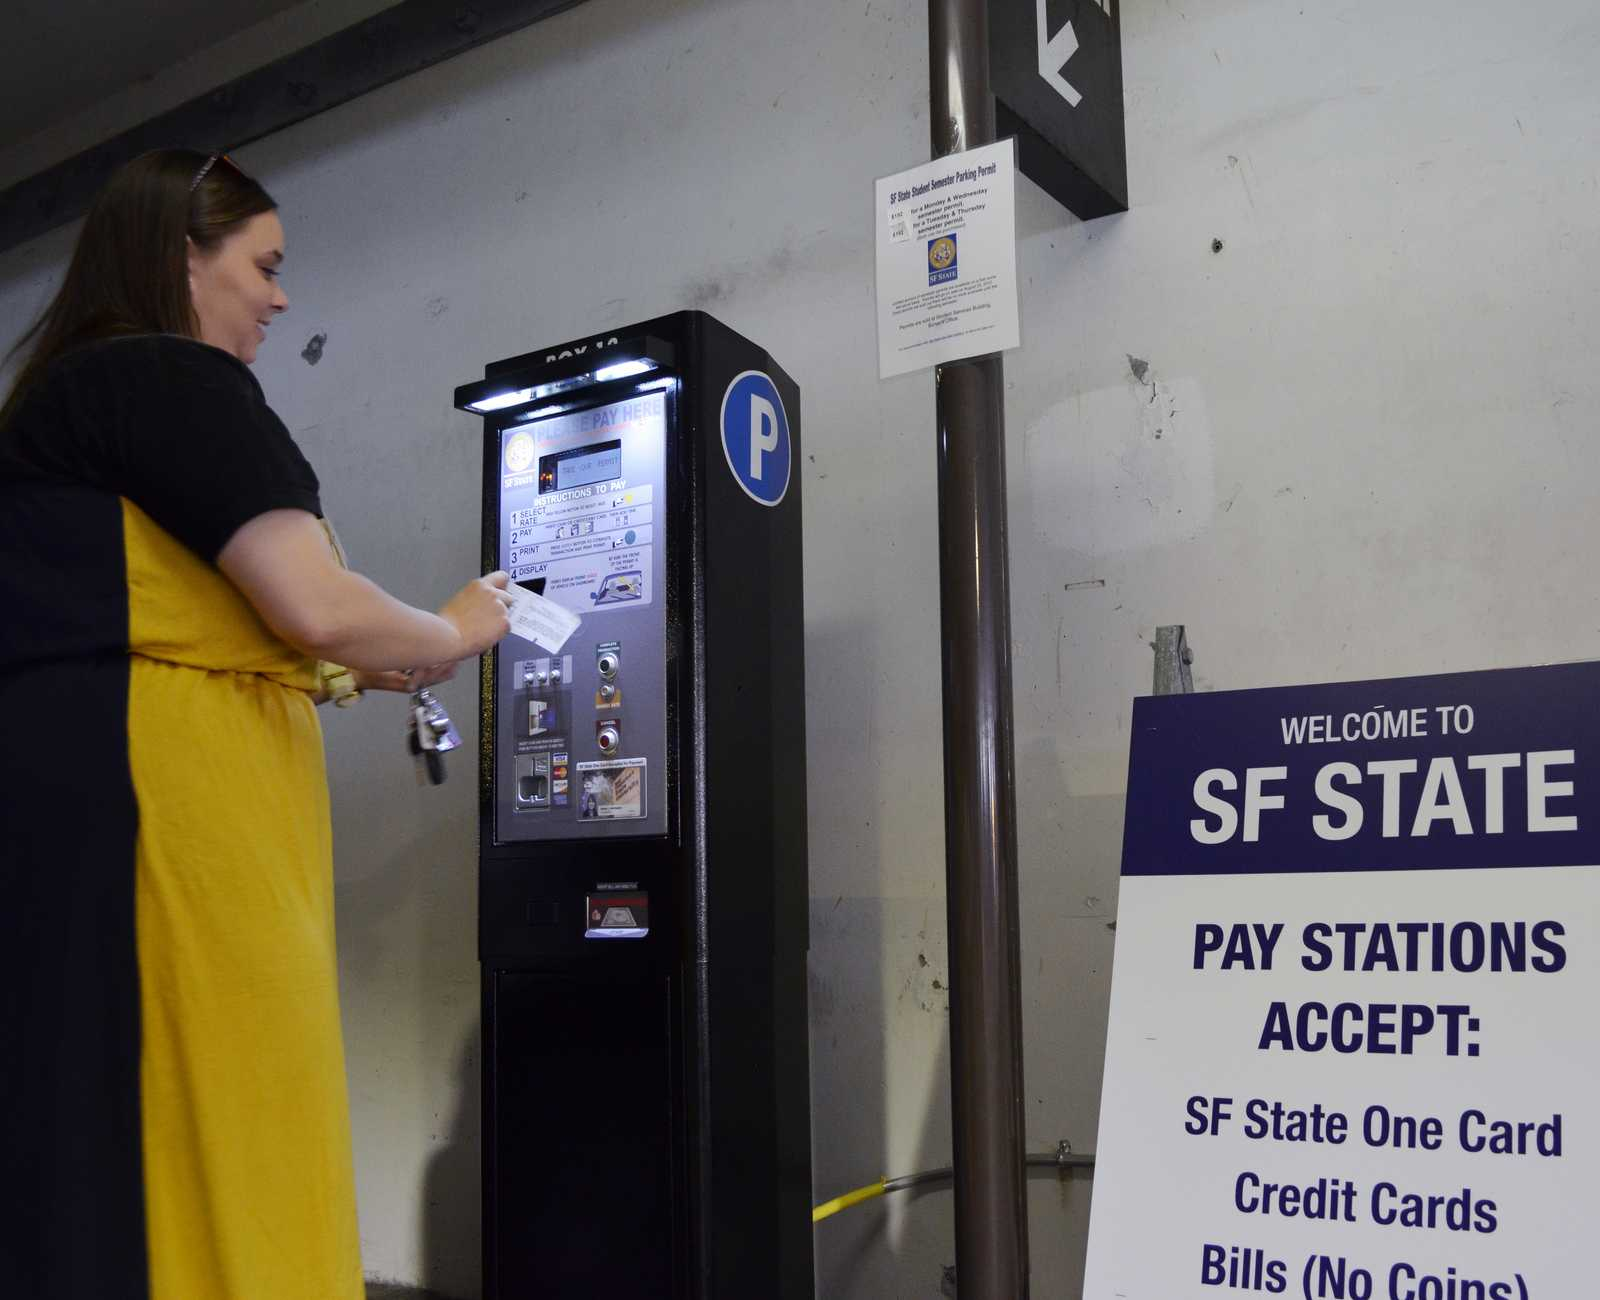 Parking structure upgrades to accept credit cards